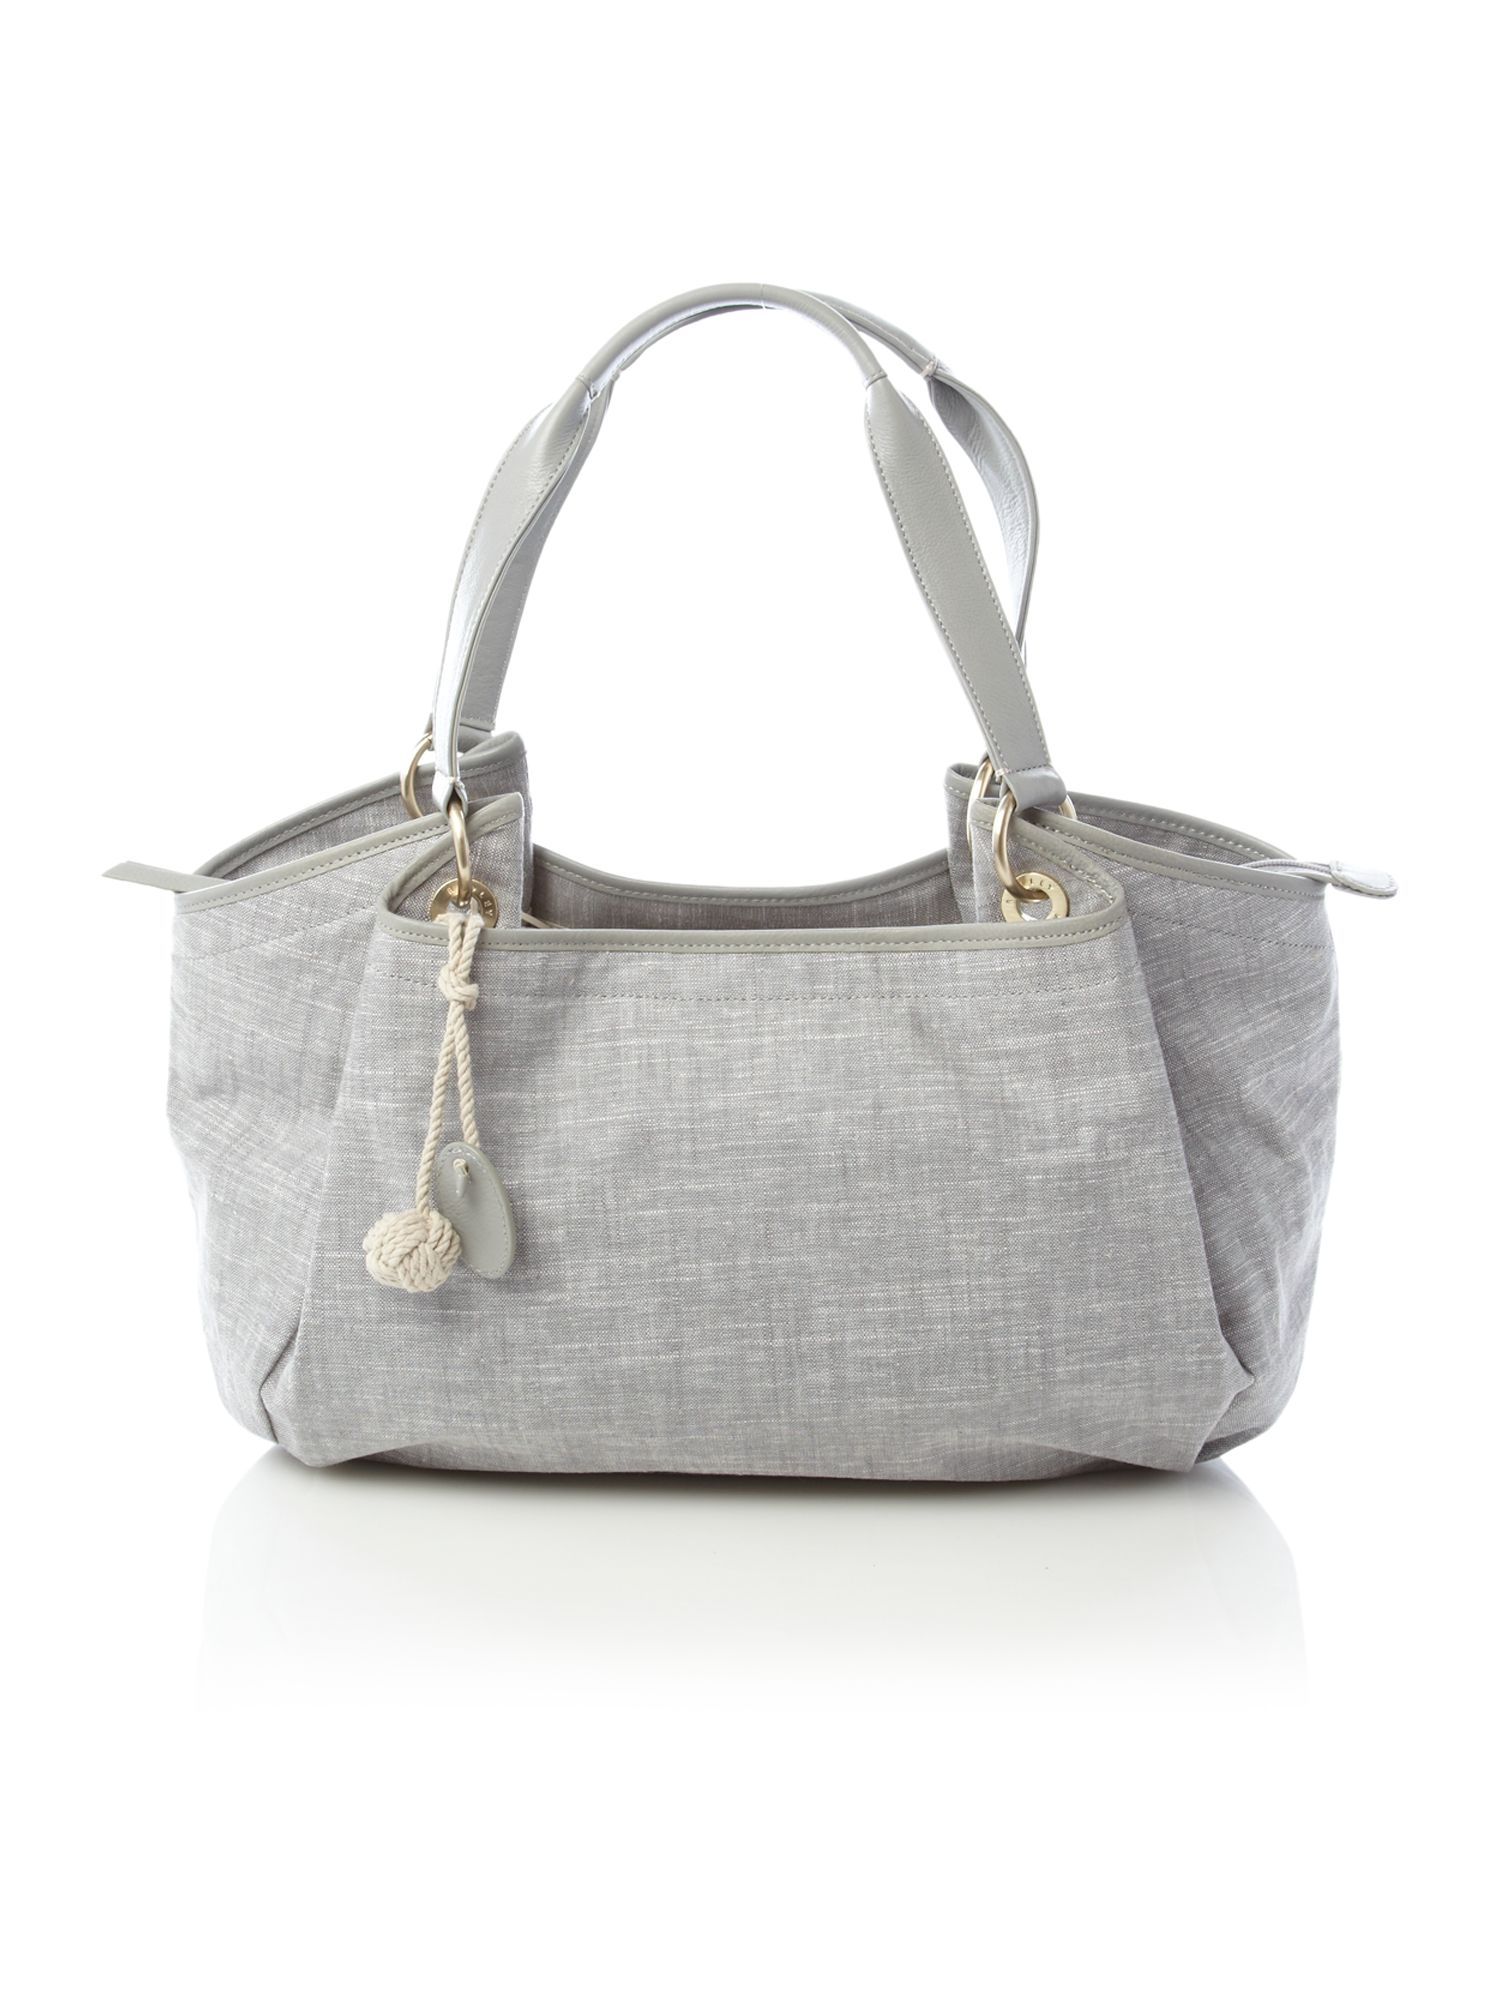 Wanstead canvas e/w tote bag